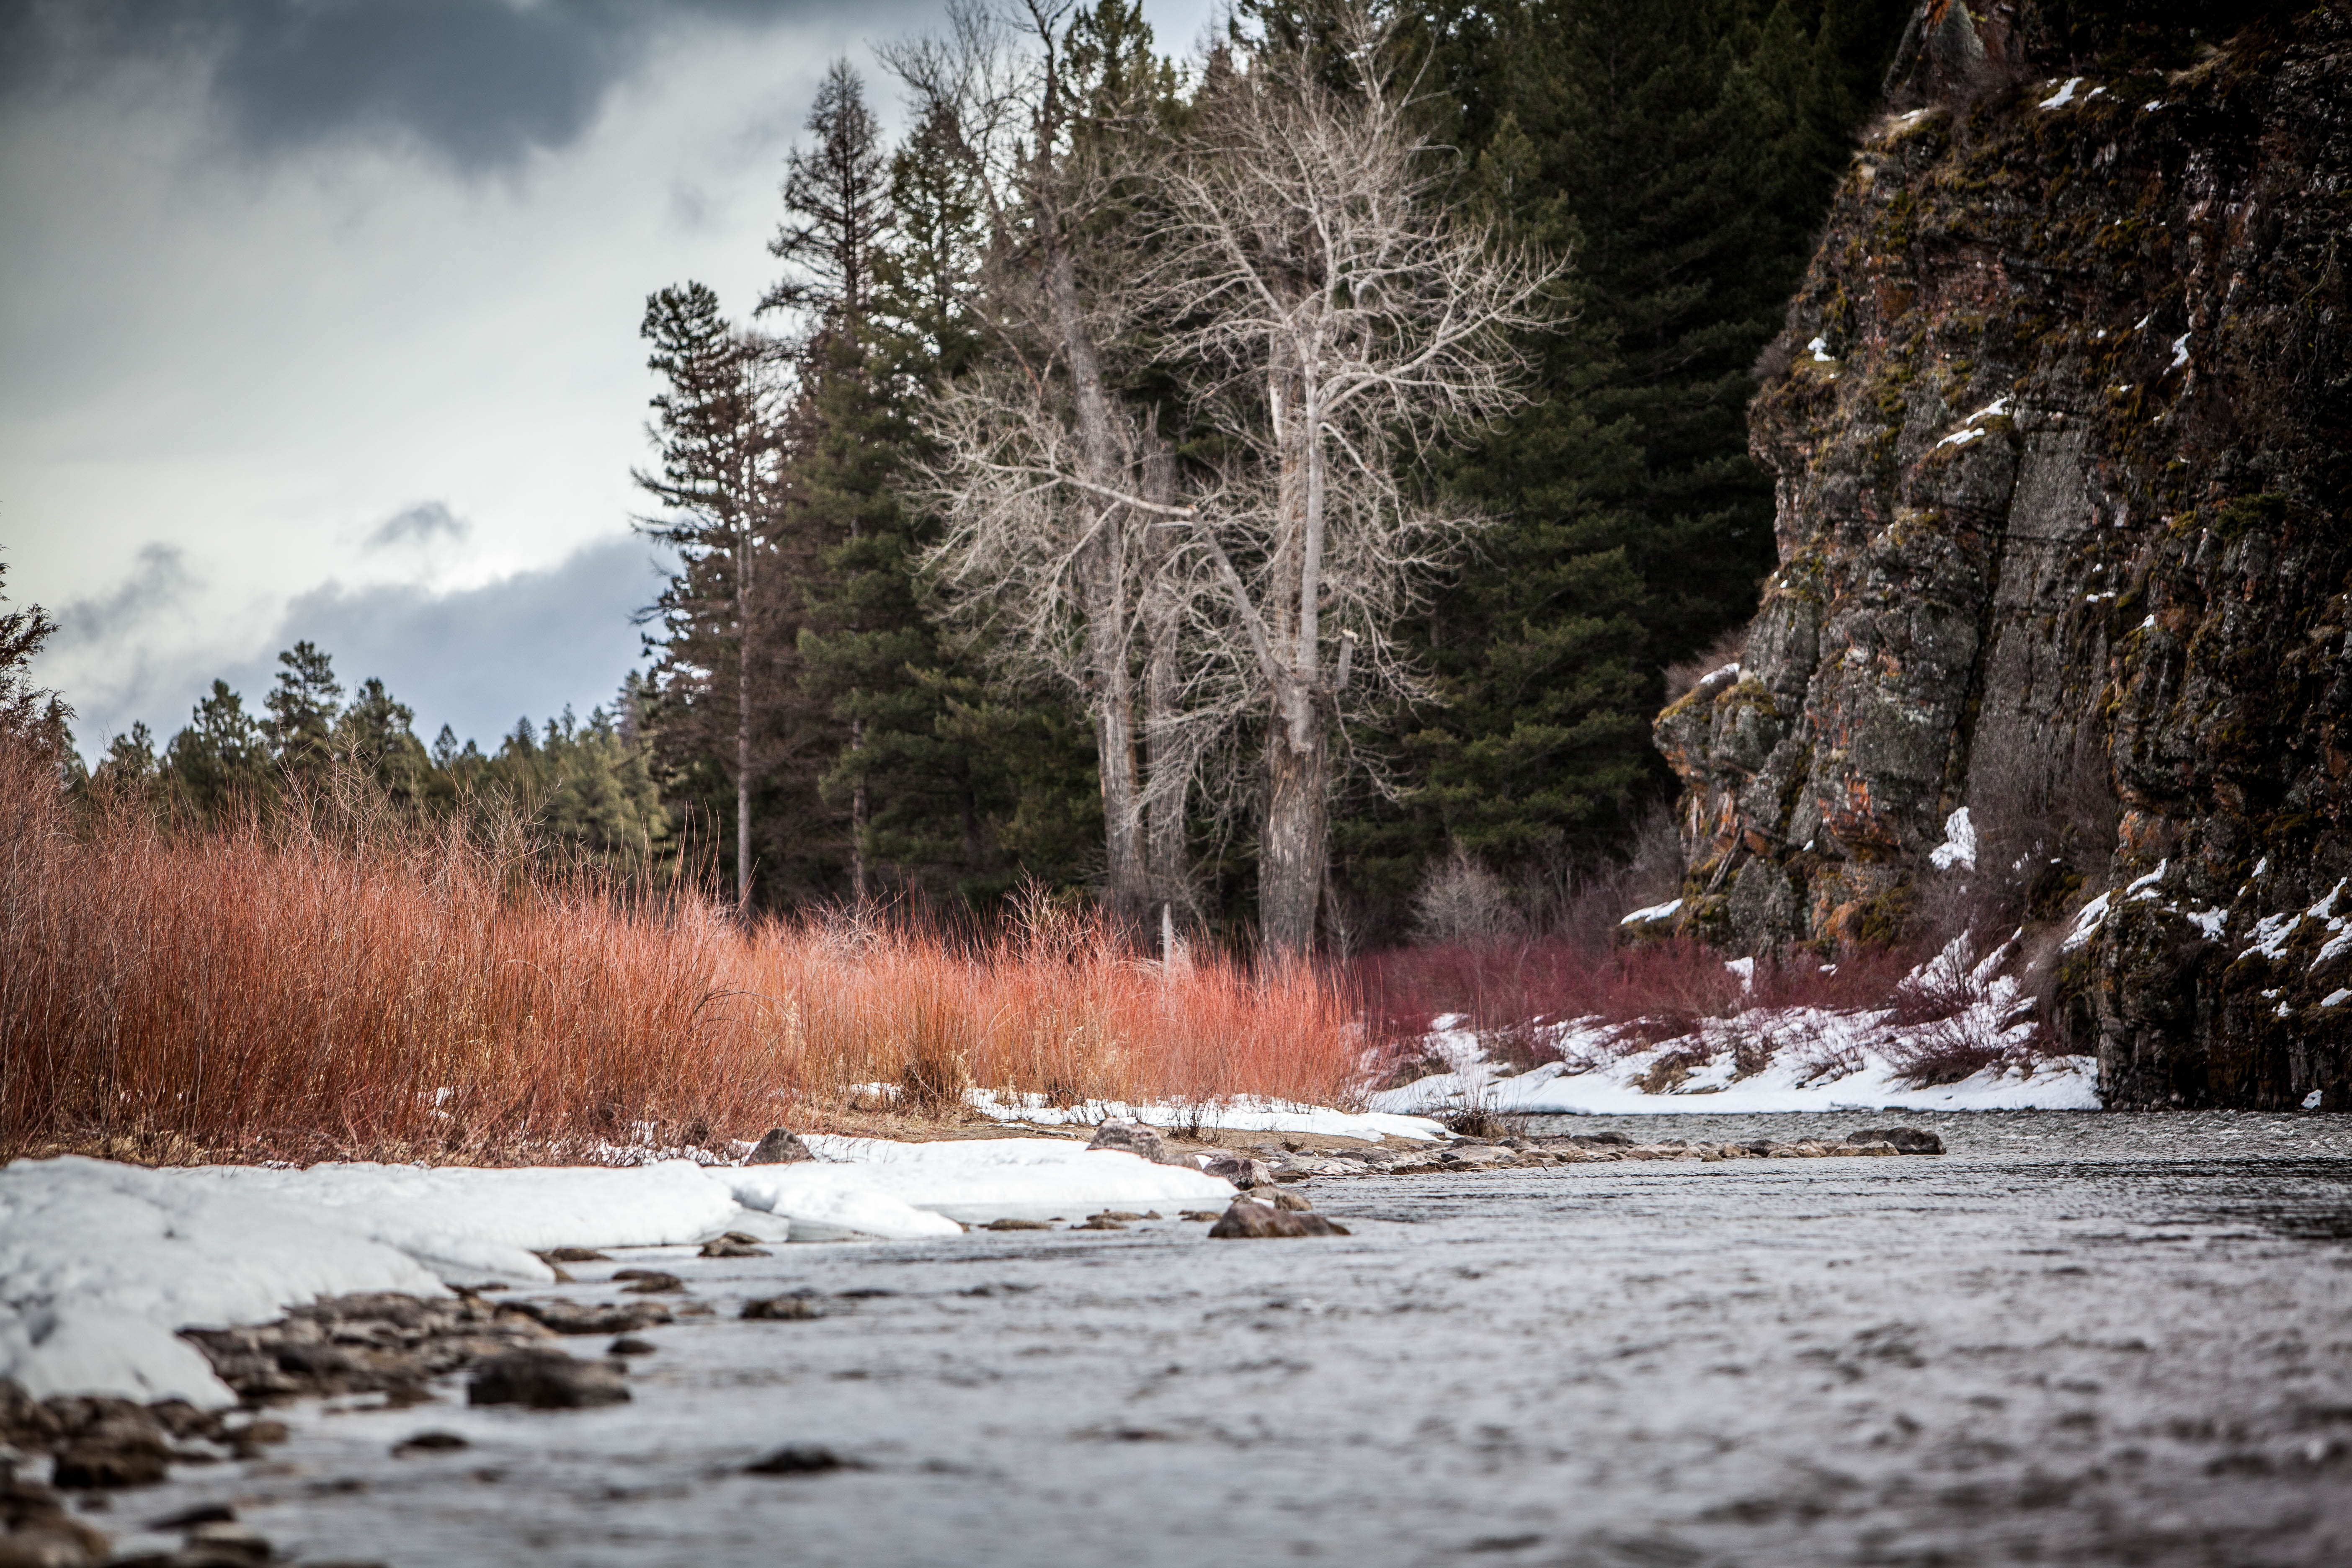 A stream flowing next to tall orange grass and snow near a mountain